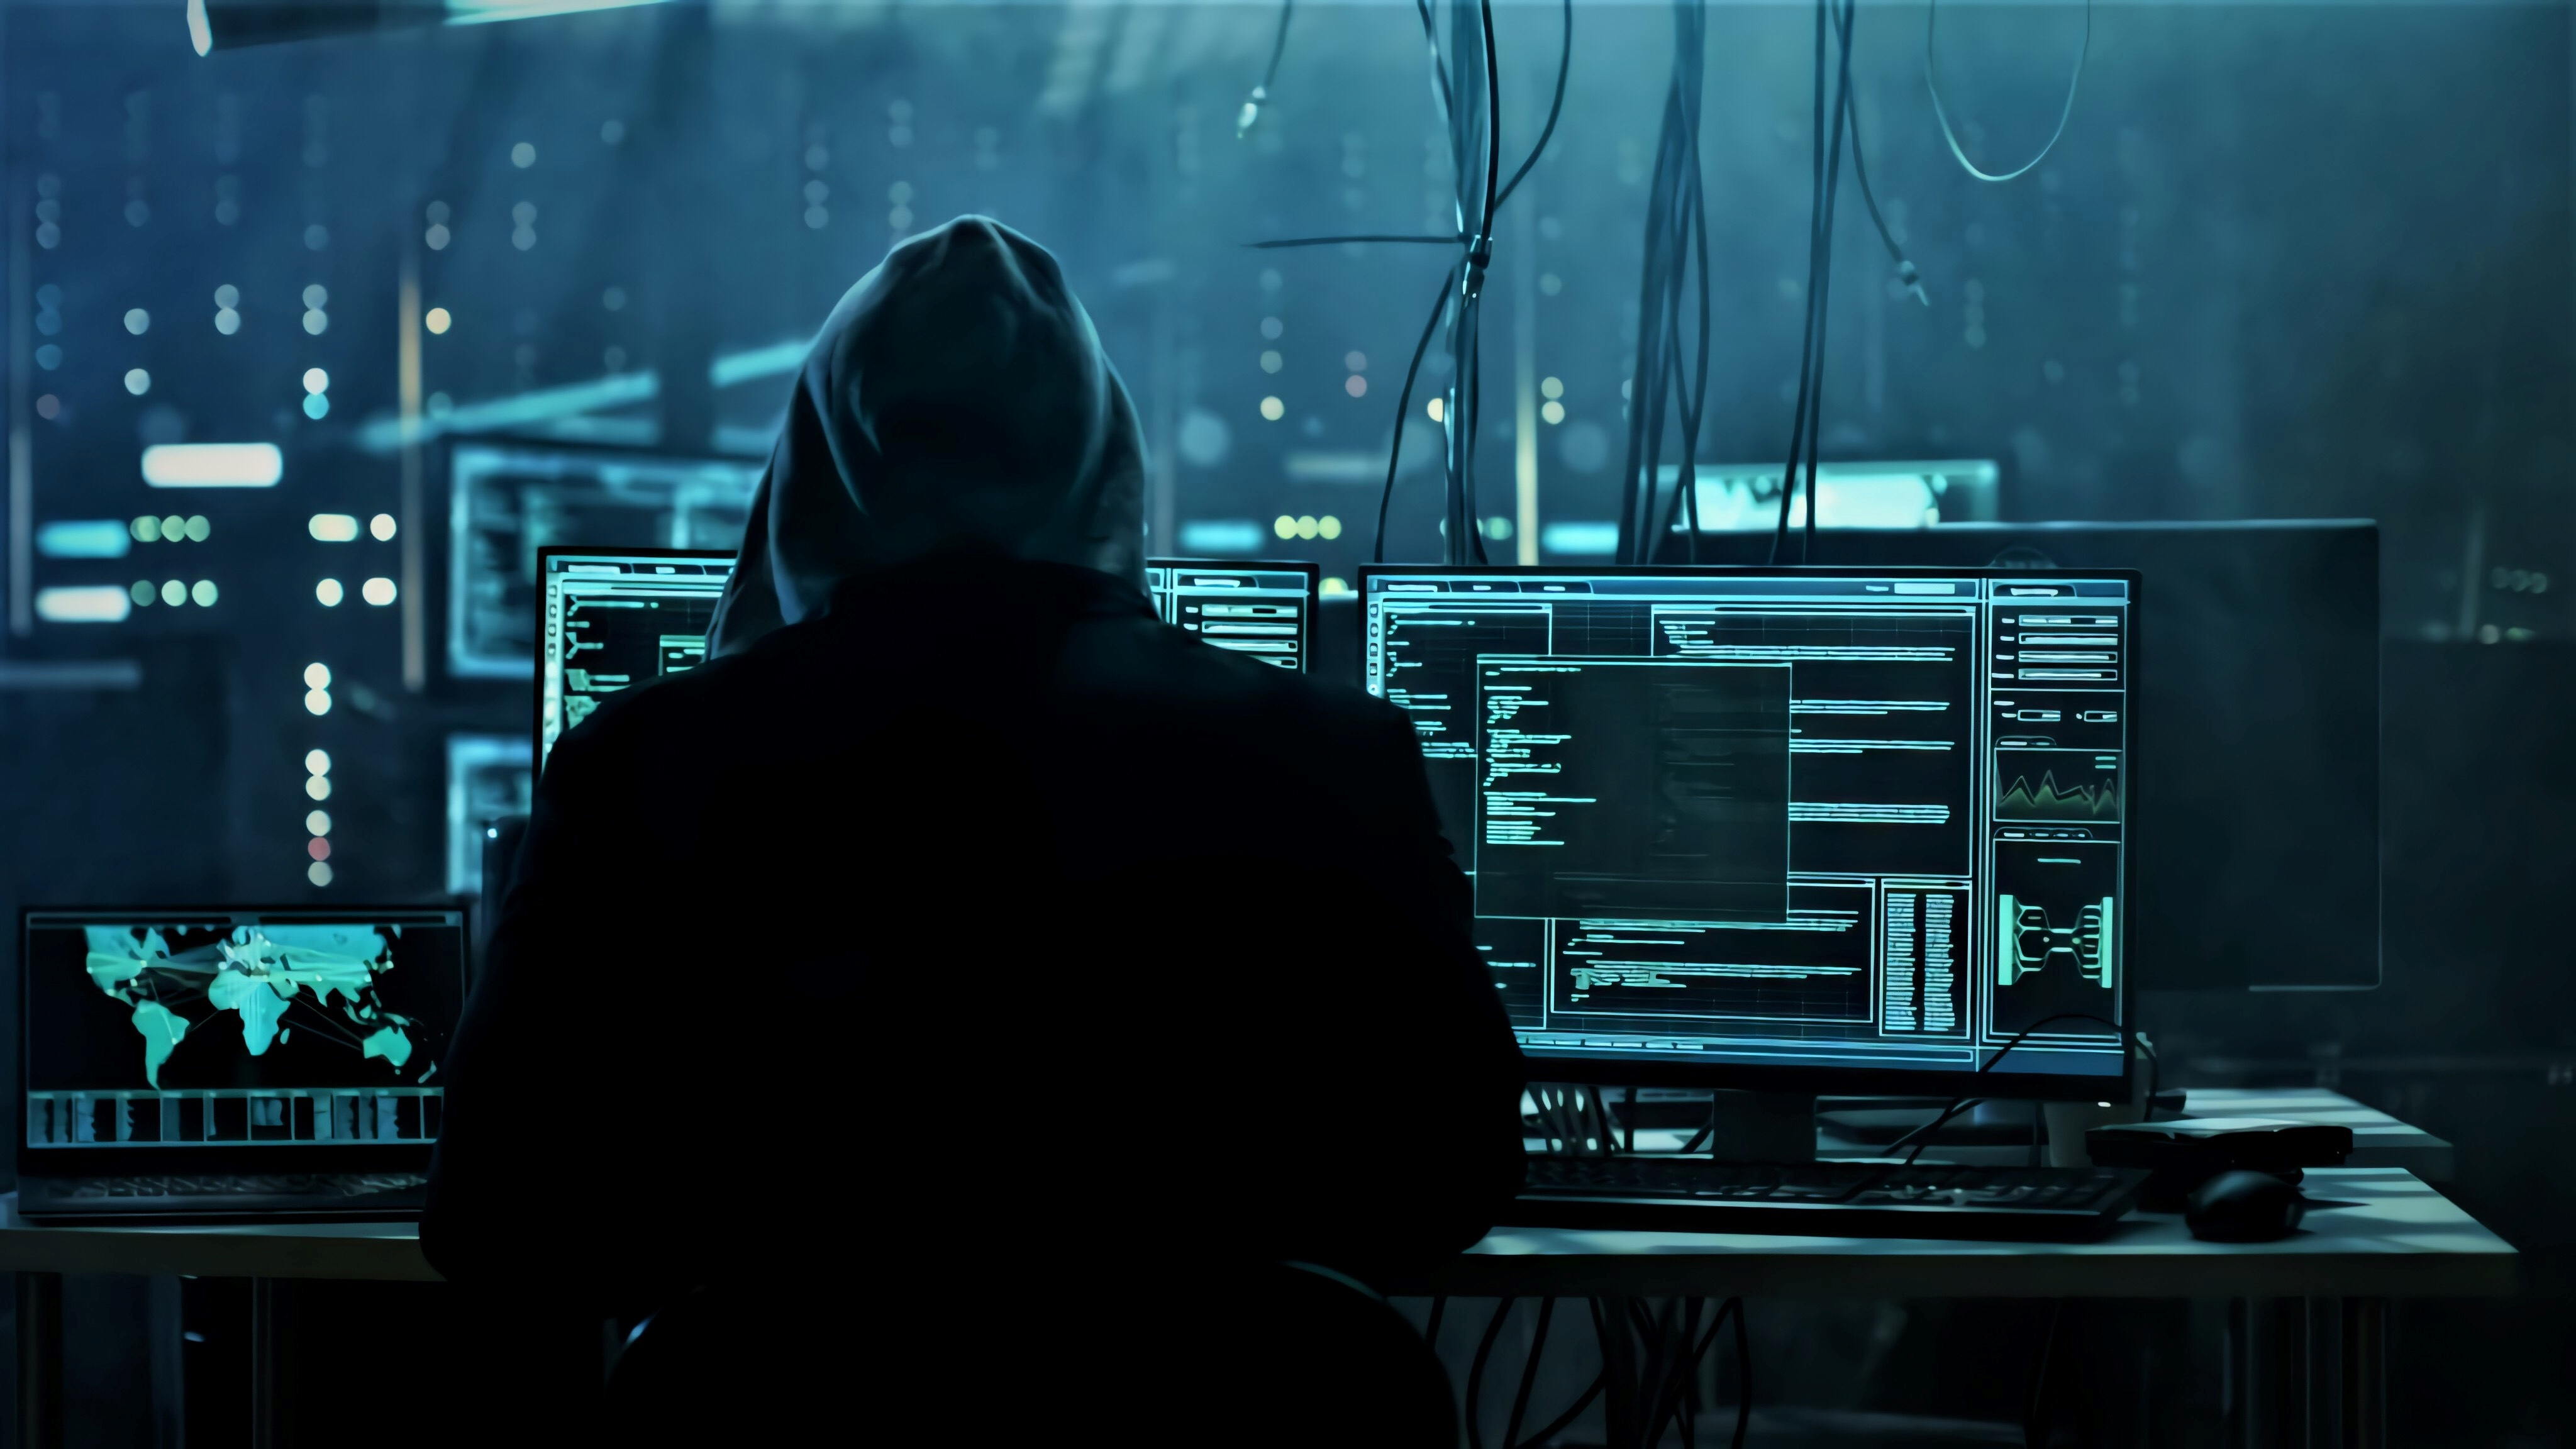 Anonymous Hacker Working Wallpaper, HD Hi-Tech 4K ...